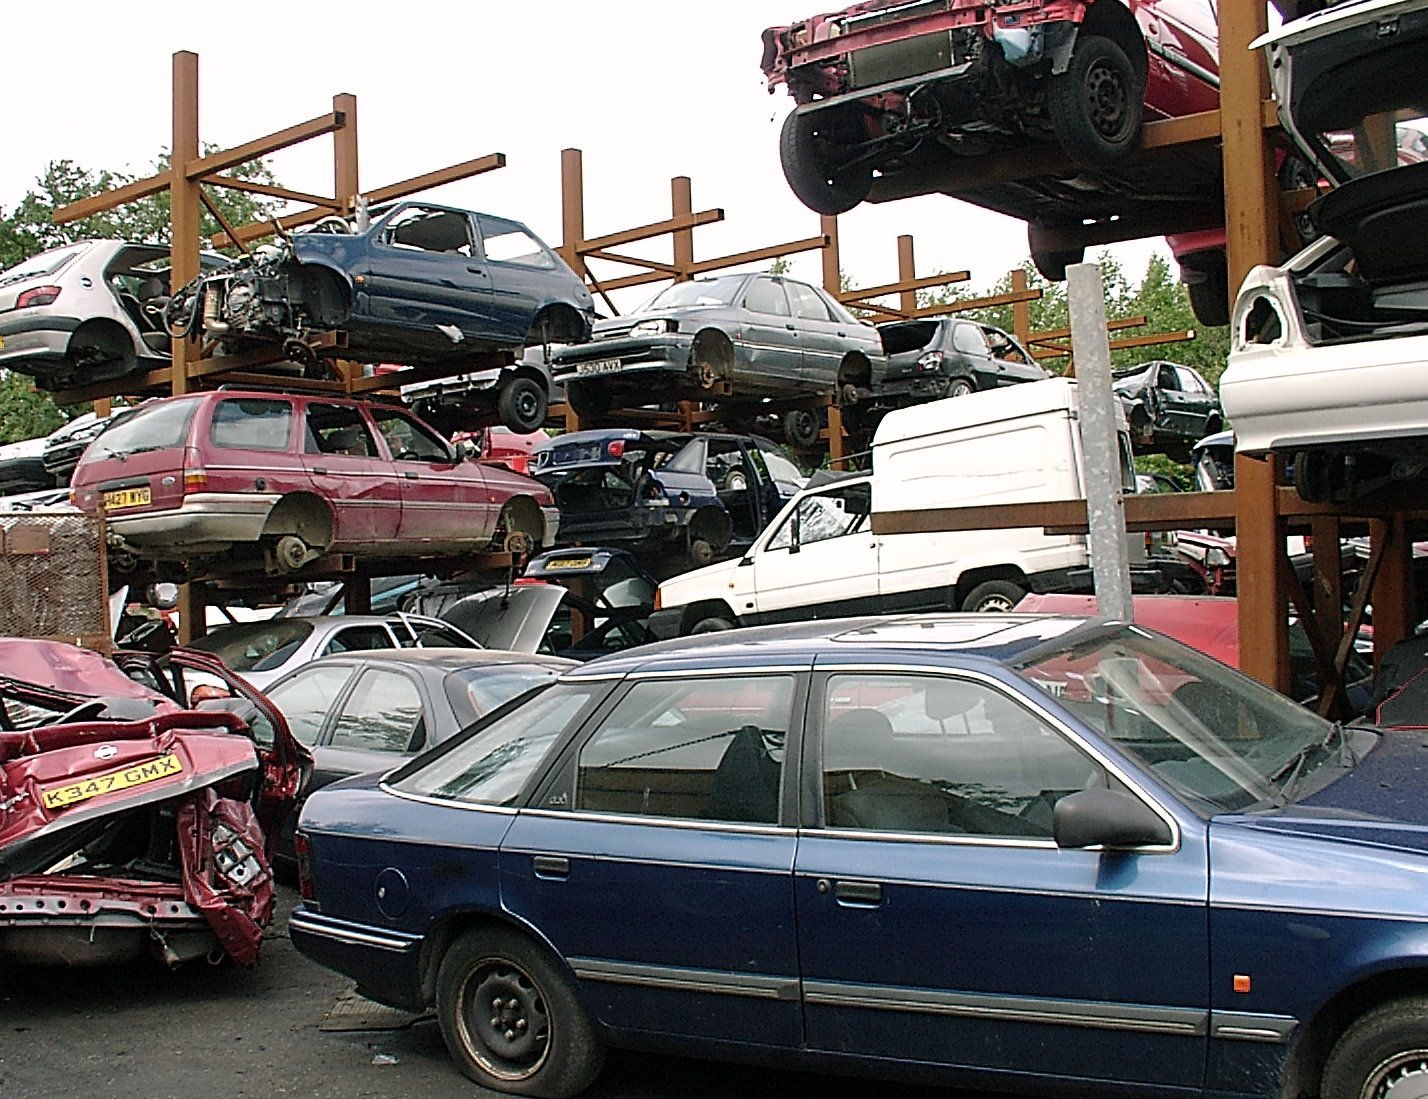 How to Set Up a Business Selling Salvaged Cars - NuWireInvestor